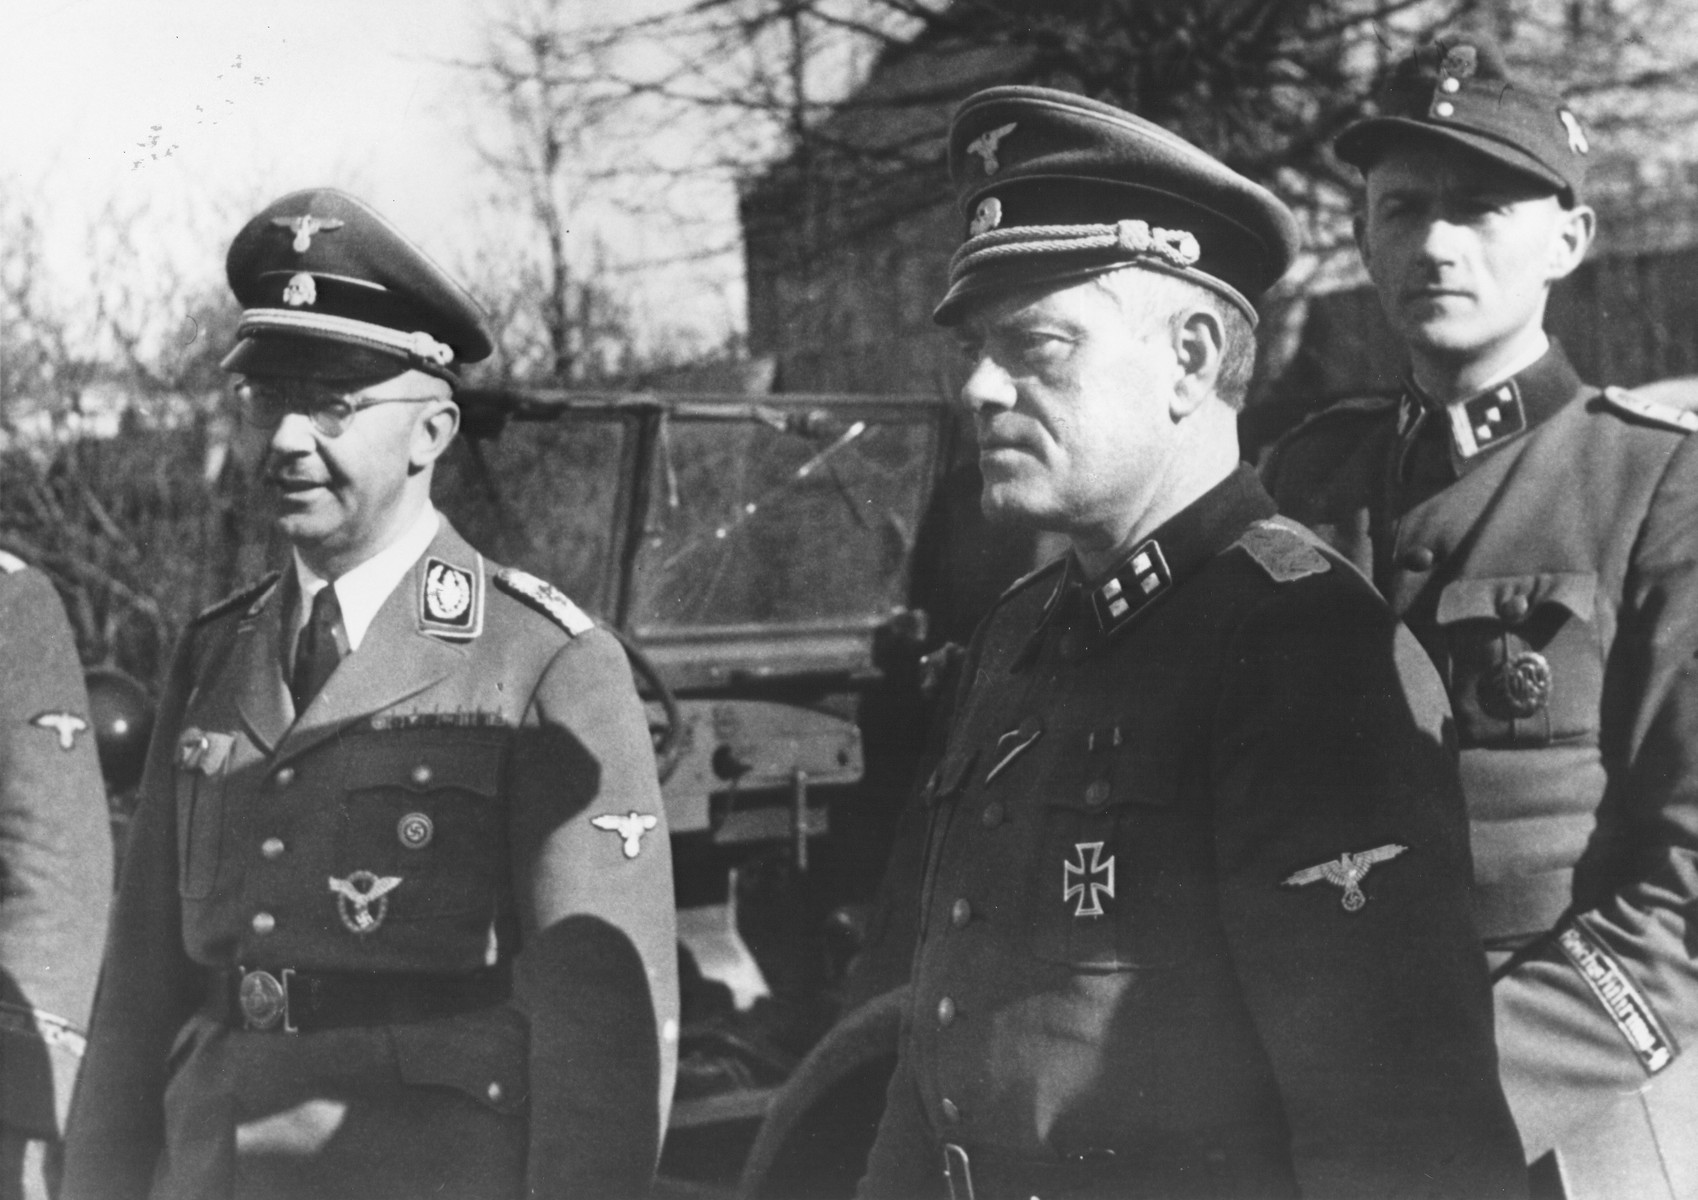 Reichsfuehrer-SS Heinrich Himmler (left) stands with Polizeiminister Jonas Lie who held temporary command of the Norwegian Legion.